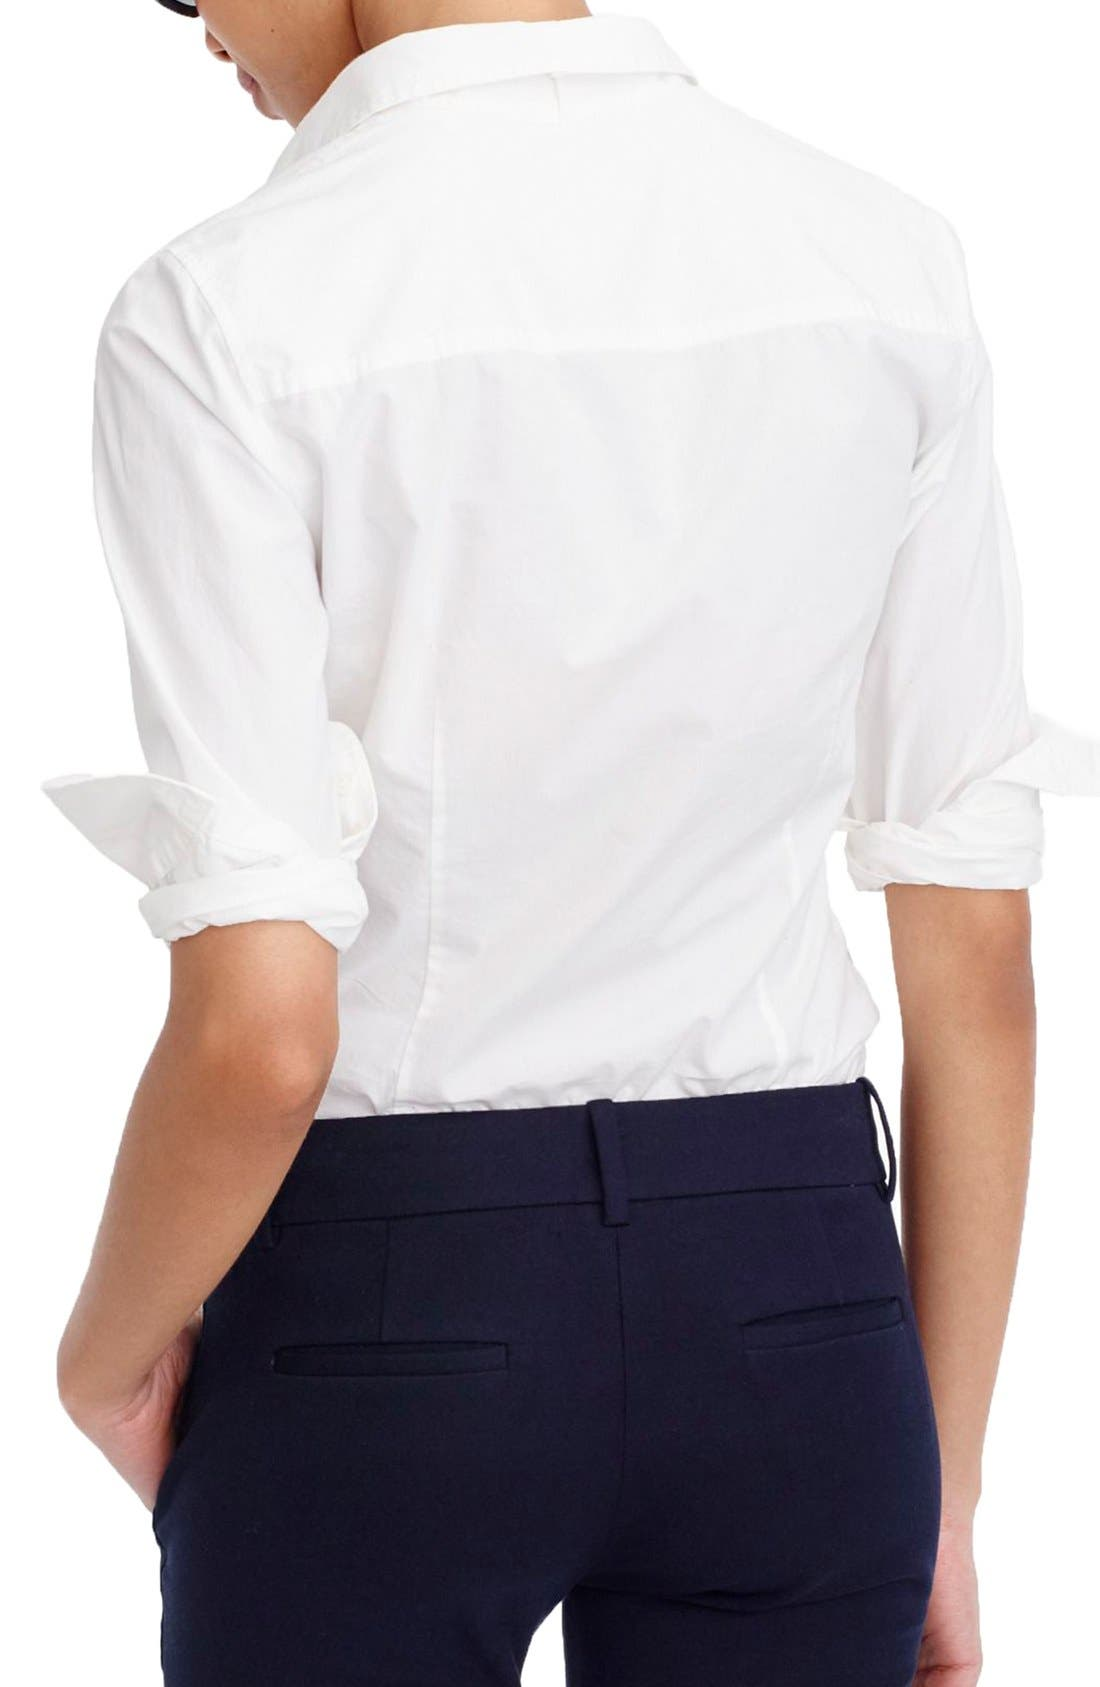 Alternate Image 3  - J.Crew New Perfect Cotton Poplin Shirt (Regular & Petite)